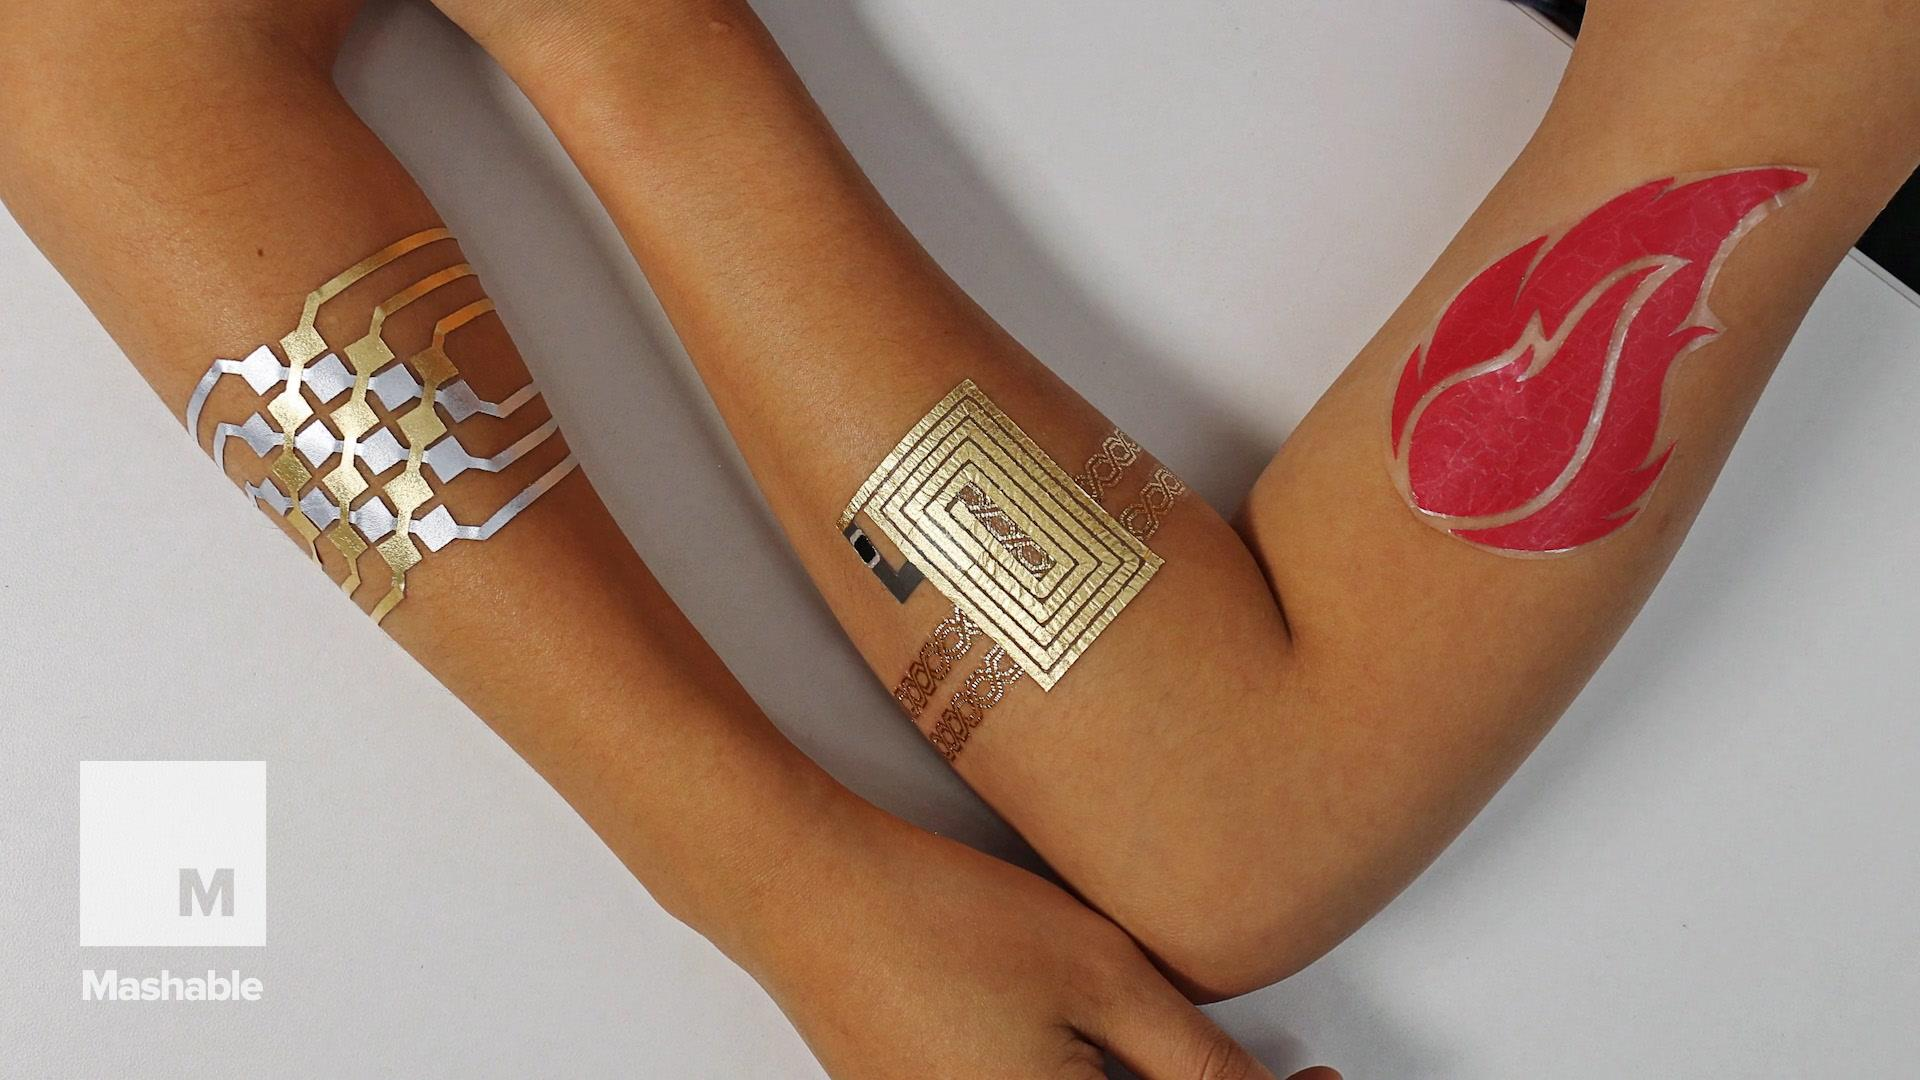 Tattoos that can control your phone are here and totally essential